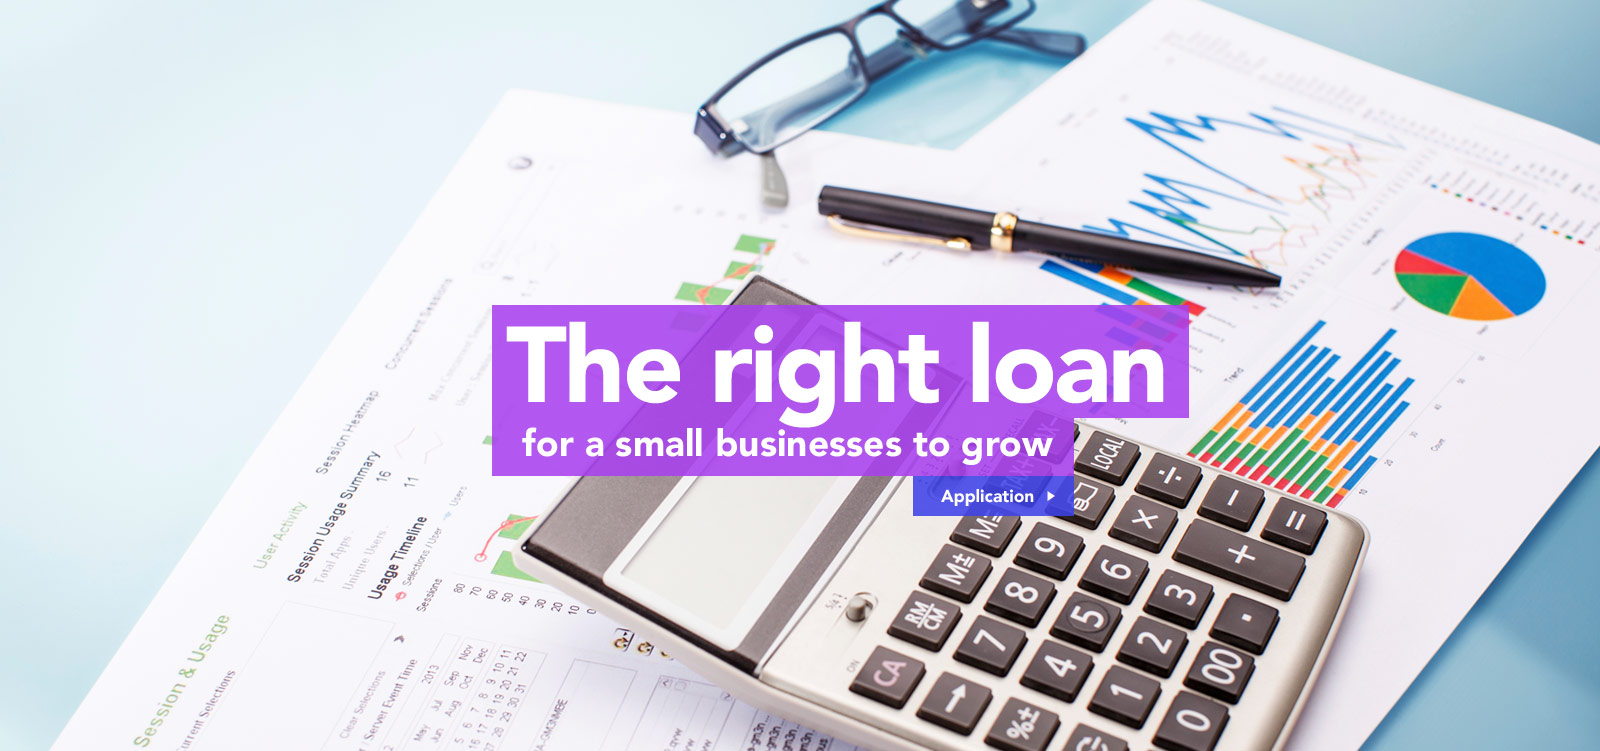 The right loan for a small business to grow